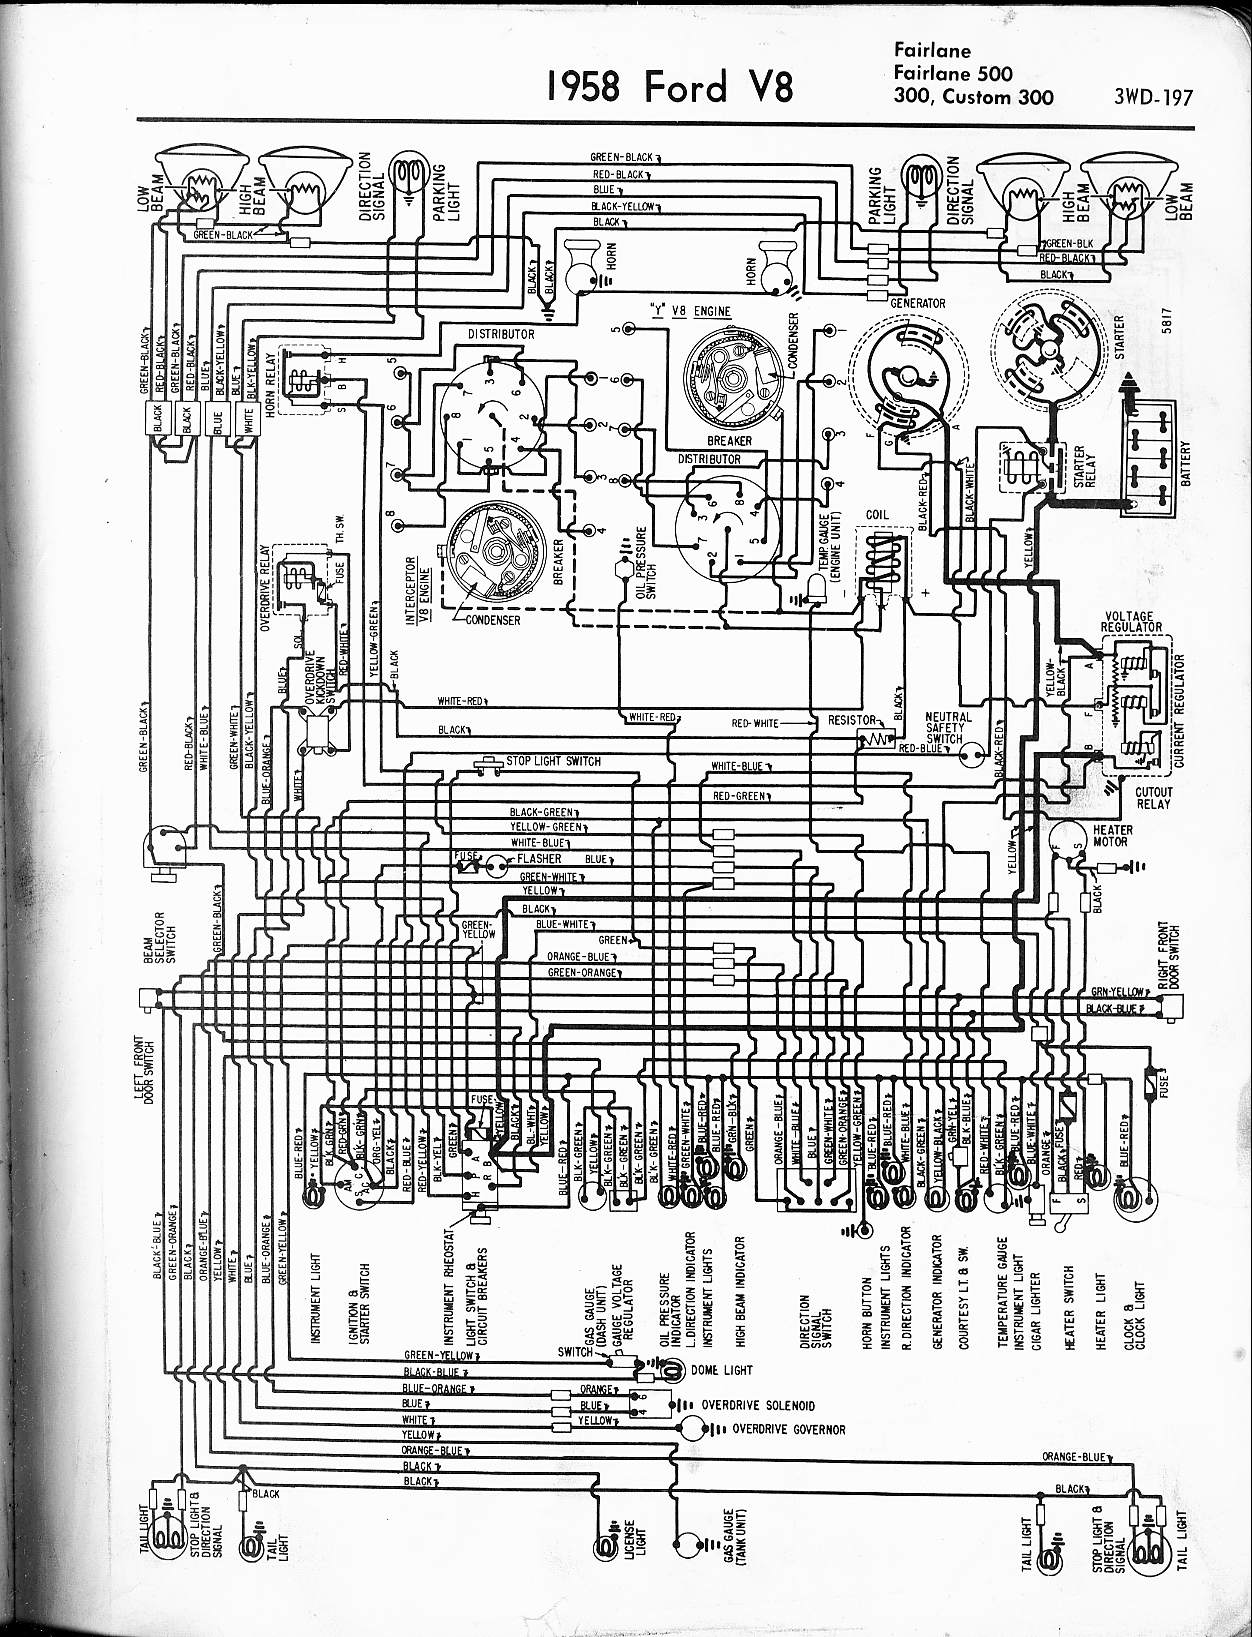 57 65 ford wiring diagrams wiring diagram ford 1936 1958 v8 fairlane, 500,  300